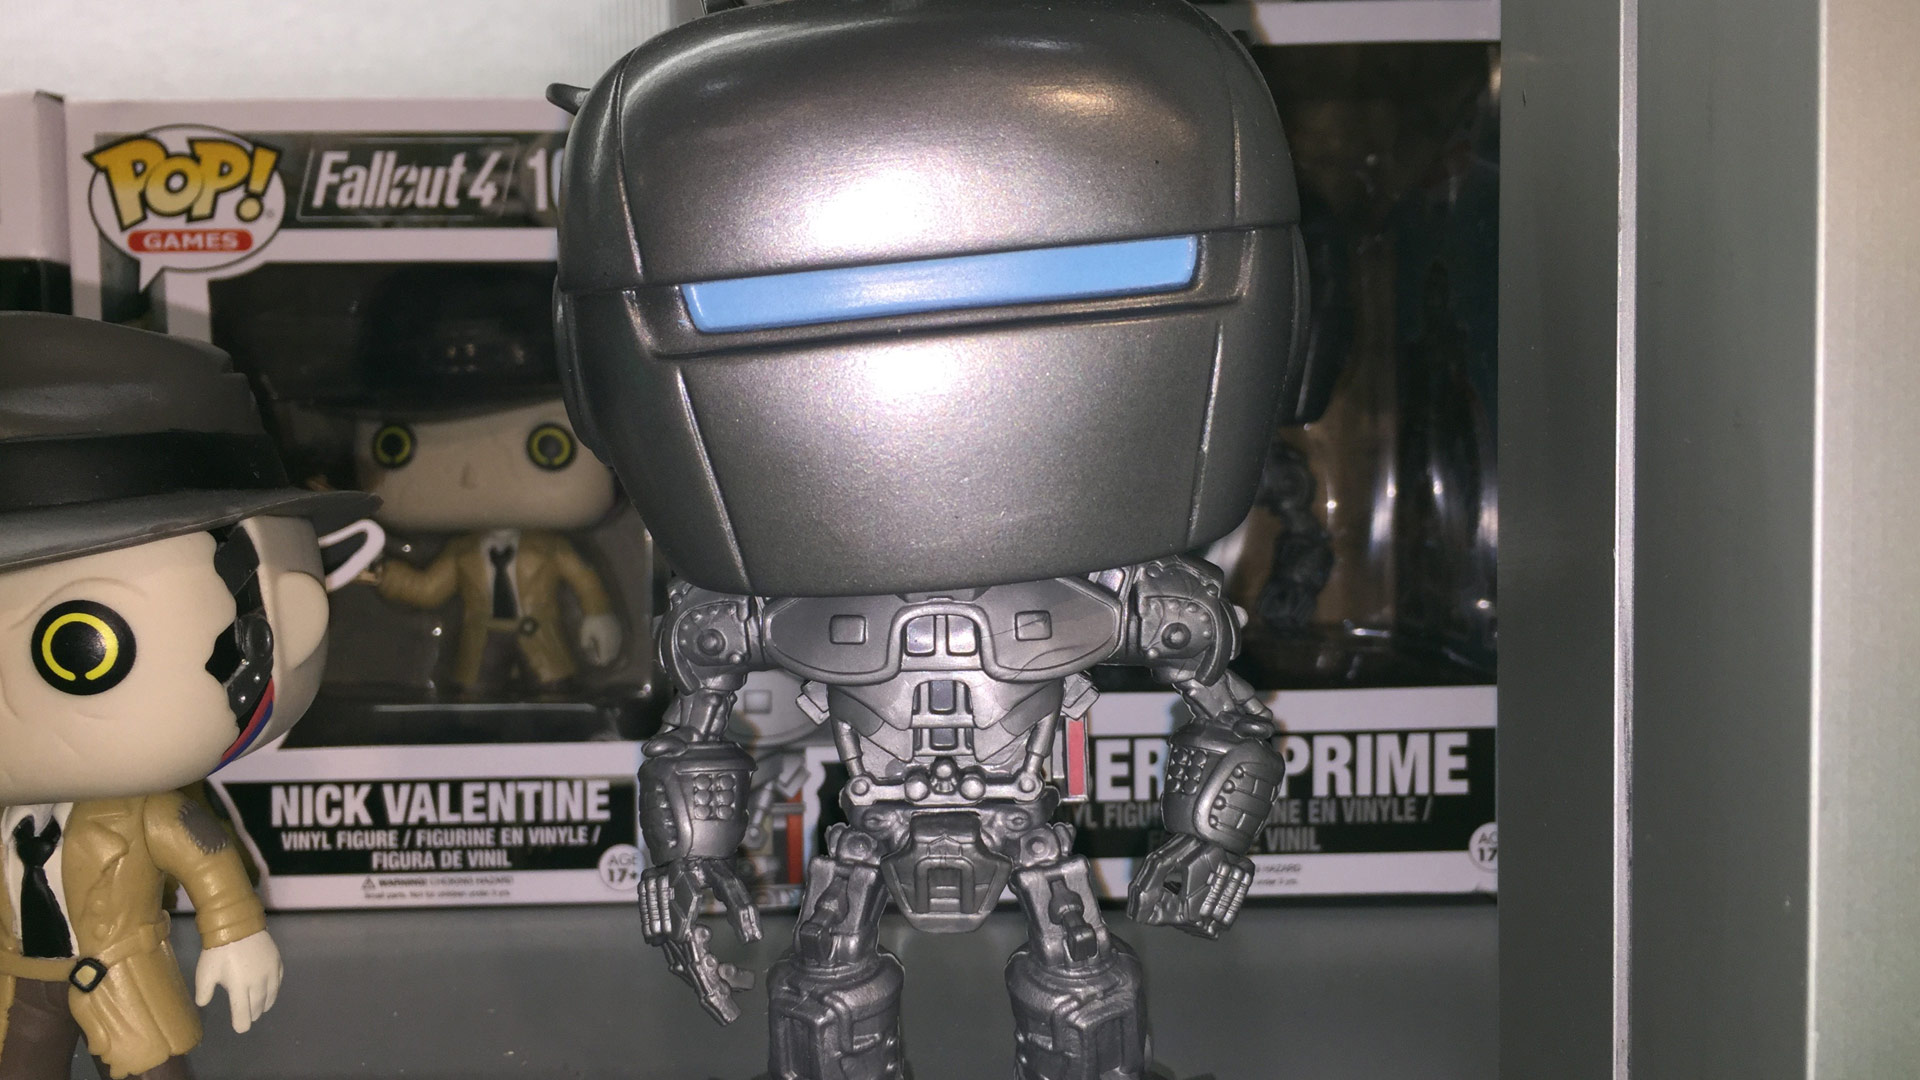 Funko Pop Fallout 4 Liberty Prime #167 Vinyl Figure at Toy Fair 2017